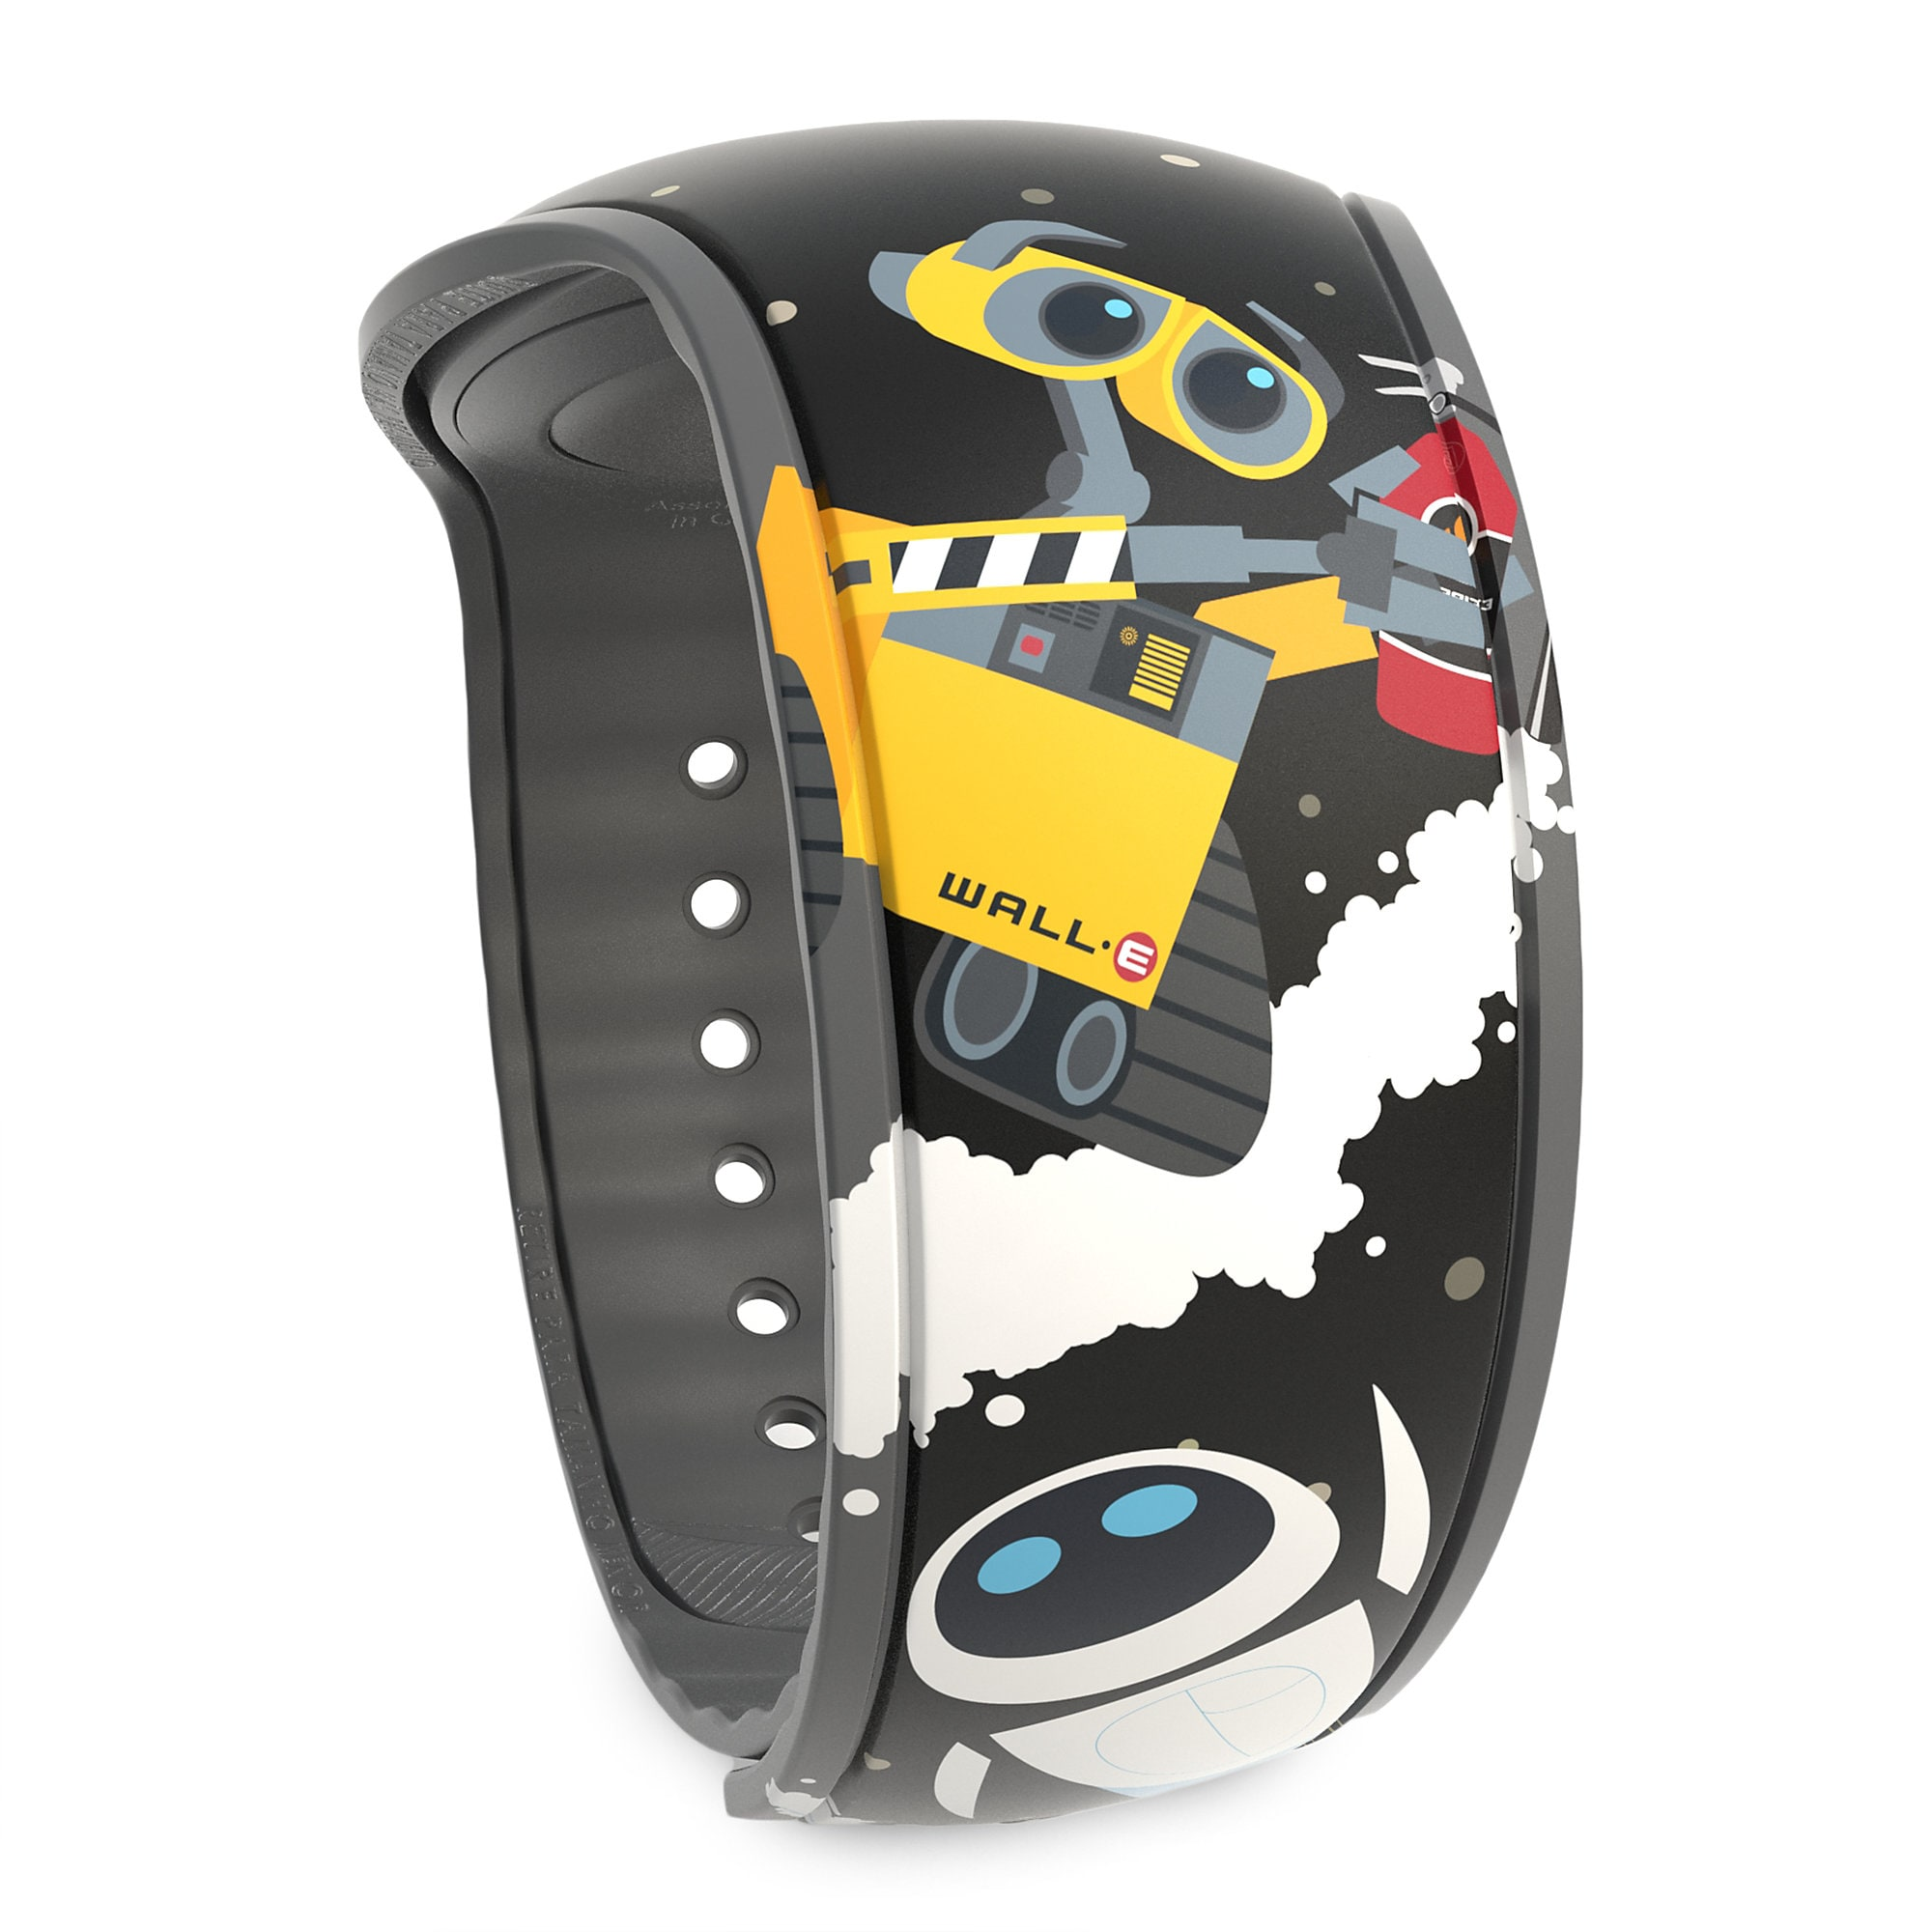 WALL•E and EVE MagicBand 2